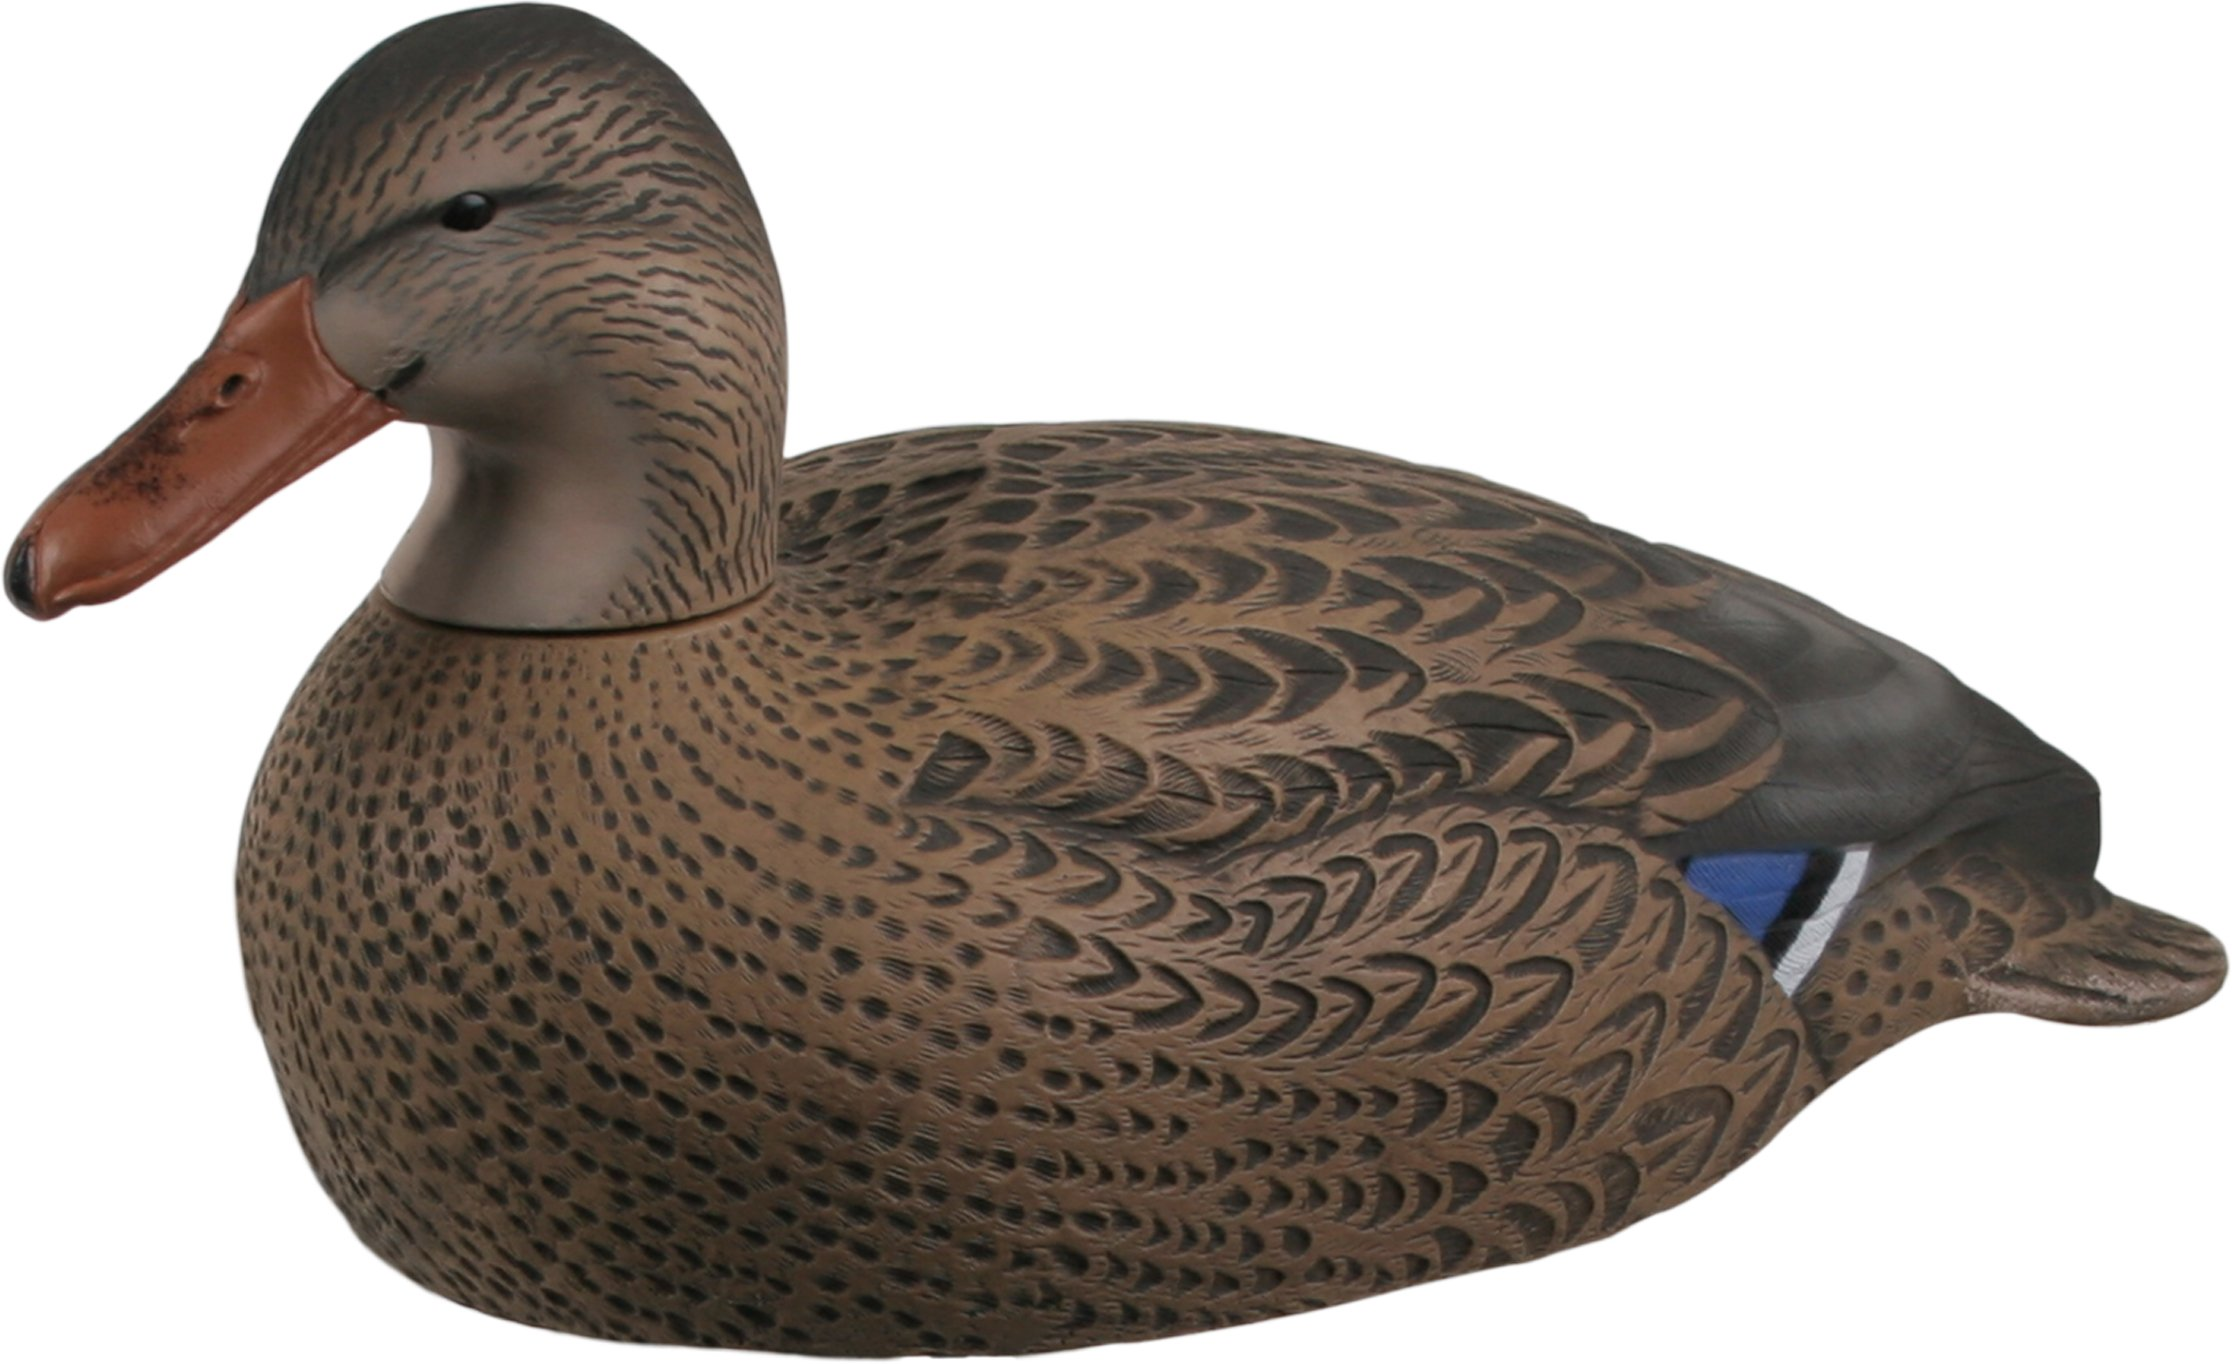 Avery GHG Over-Sized Mallard Shells with Motion Stakes - Dozen-Harvesters, AV-70167 by GreenHead Gear (Image #3)